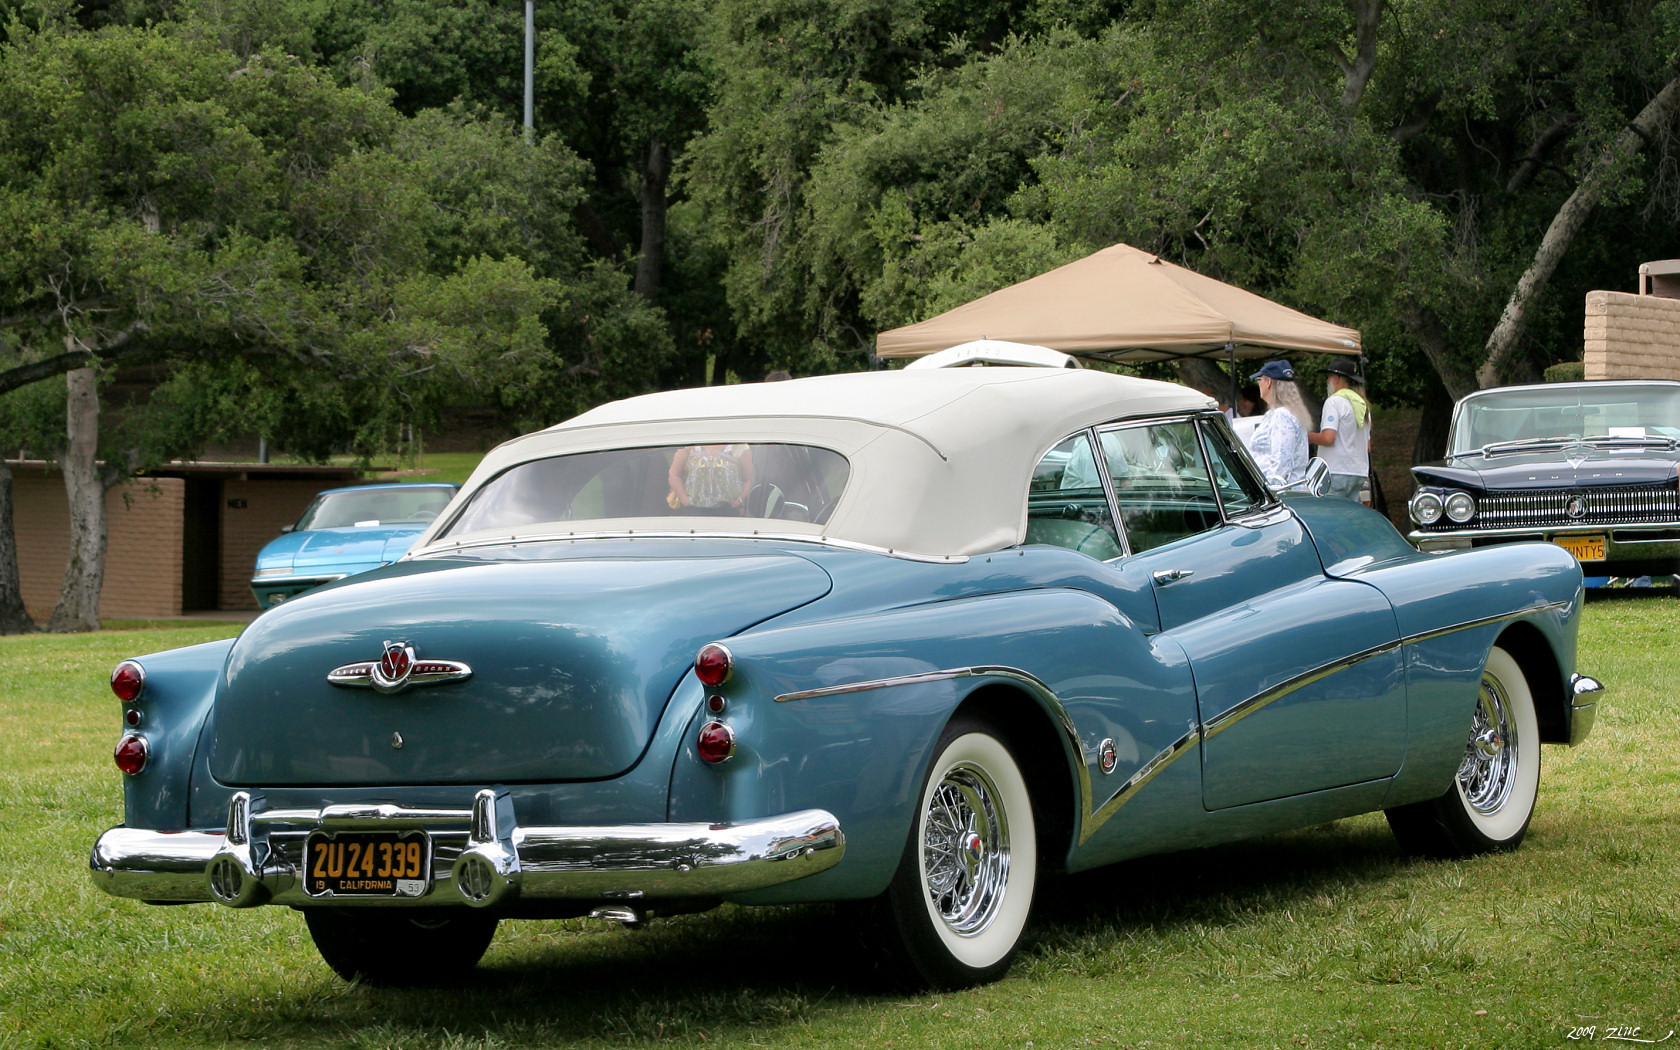 1953 1955 Sunbeam Alpine together with File 1953 Buick Skylark   blue   rvr furthermore Cuba Havana Beach Holiday Caribbean Island  munism moreover Automotive Design Oem Concepts as well Selection De Noel La Collection Ferrari. on classic cars from 1950s